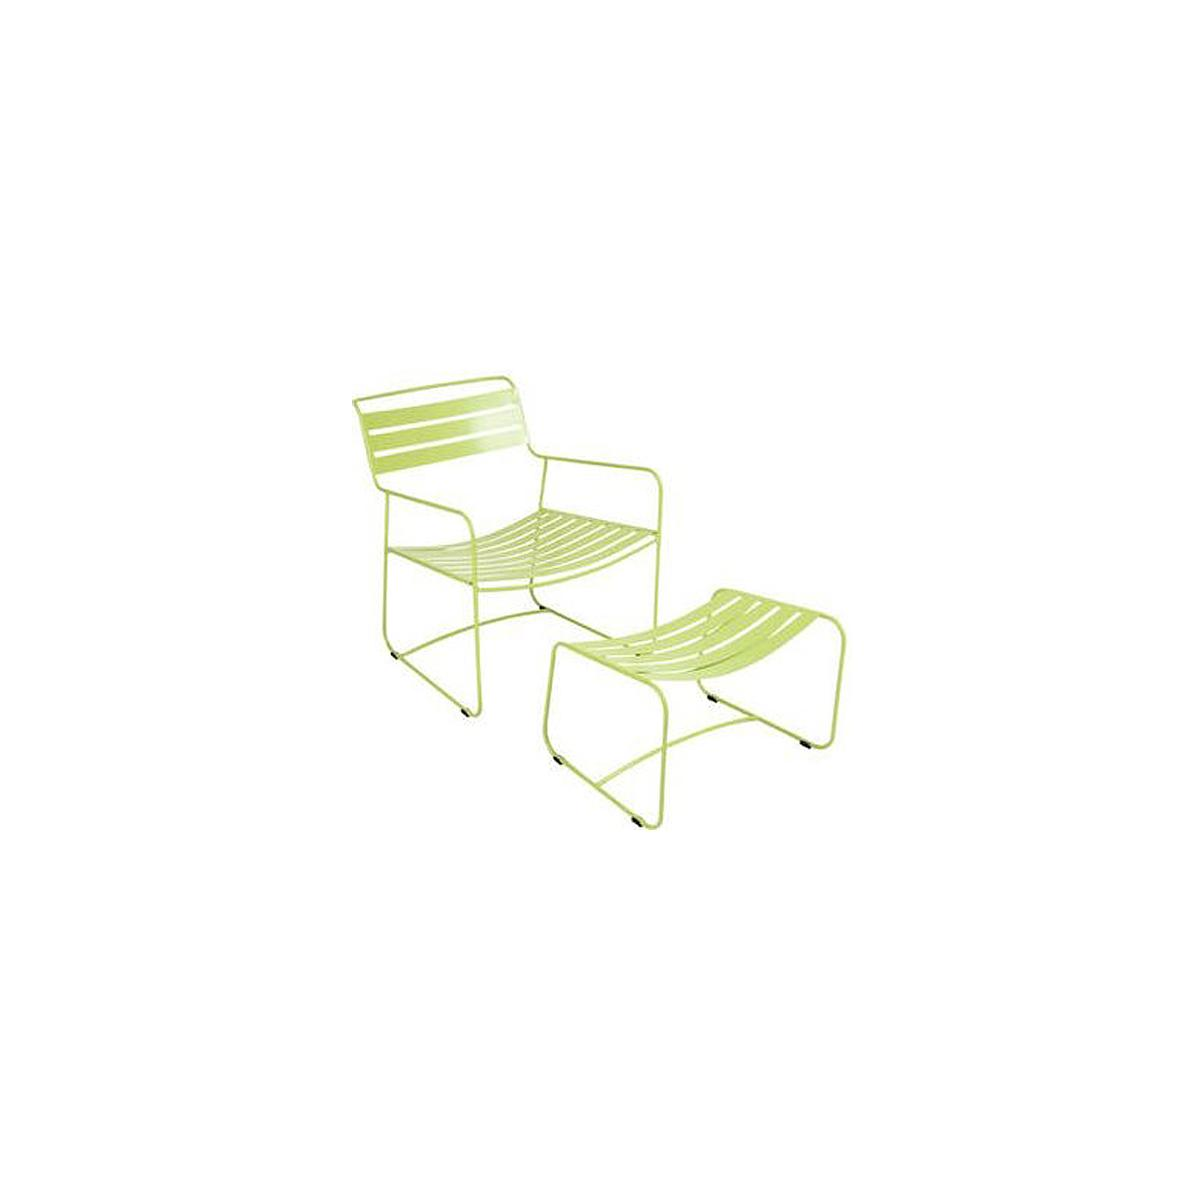 SURPRISING by Fermob Fauteuil + repose pied Vert verveine